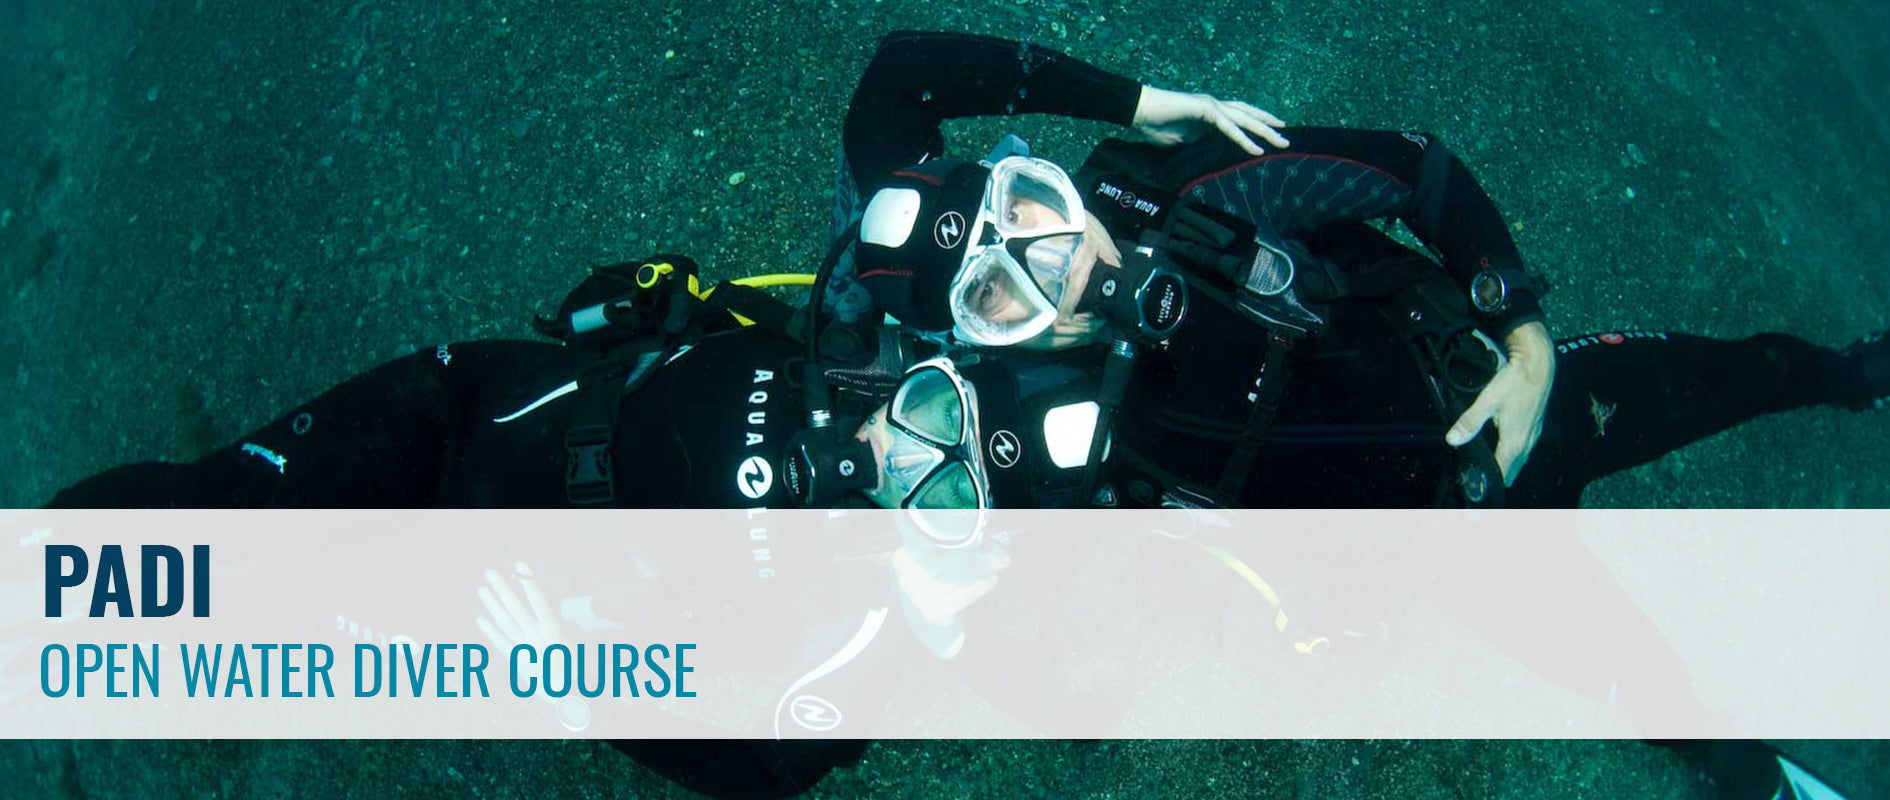 PADI Open Water Diver Course | Learn to Dive | Dive Otago